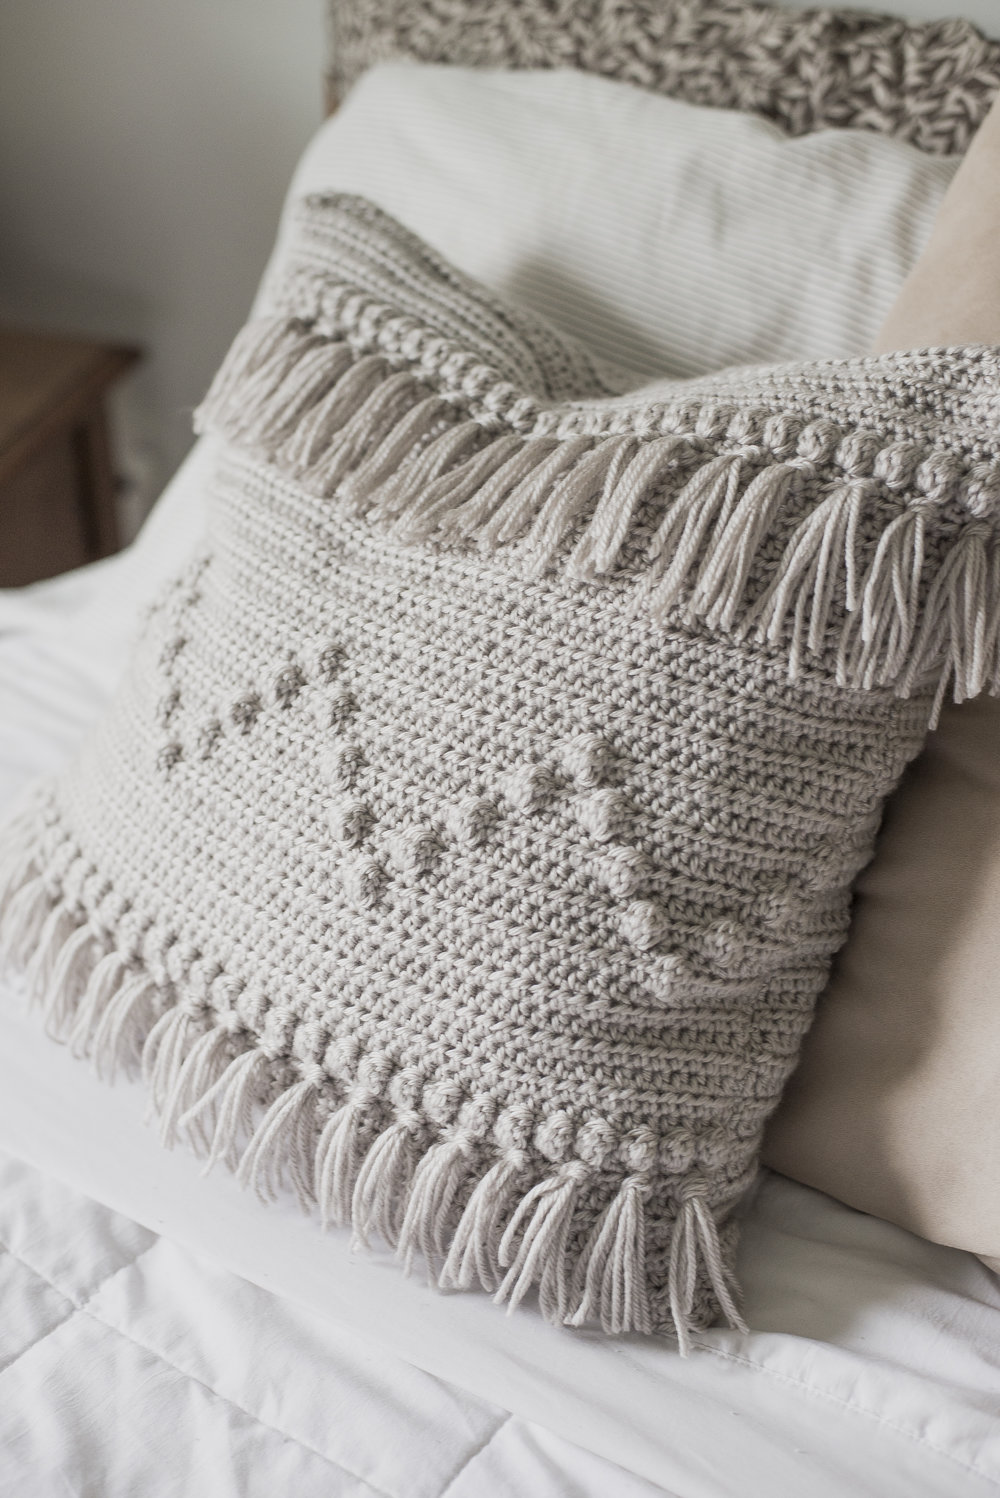 Free Crochet Pattern for a Fringe Crochet Pattern - Megmade with Love